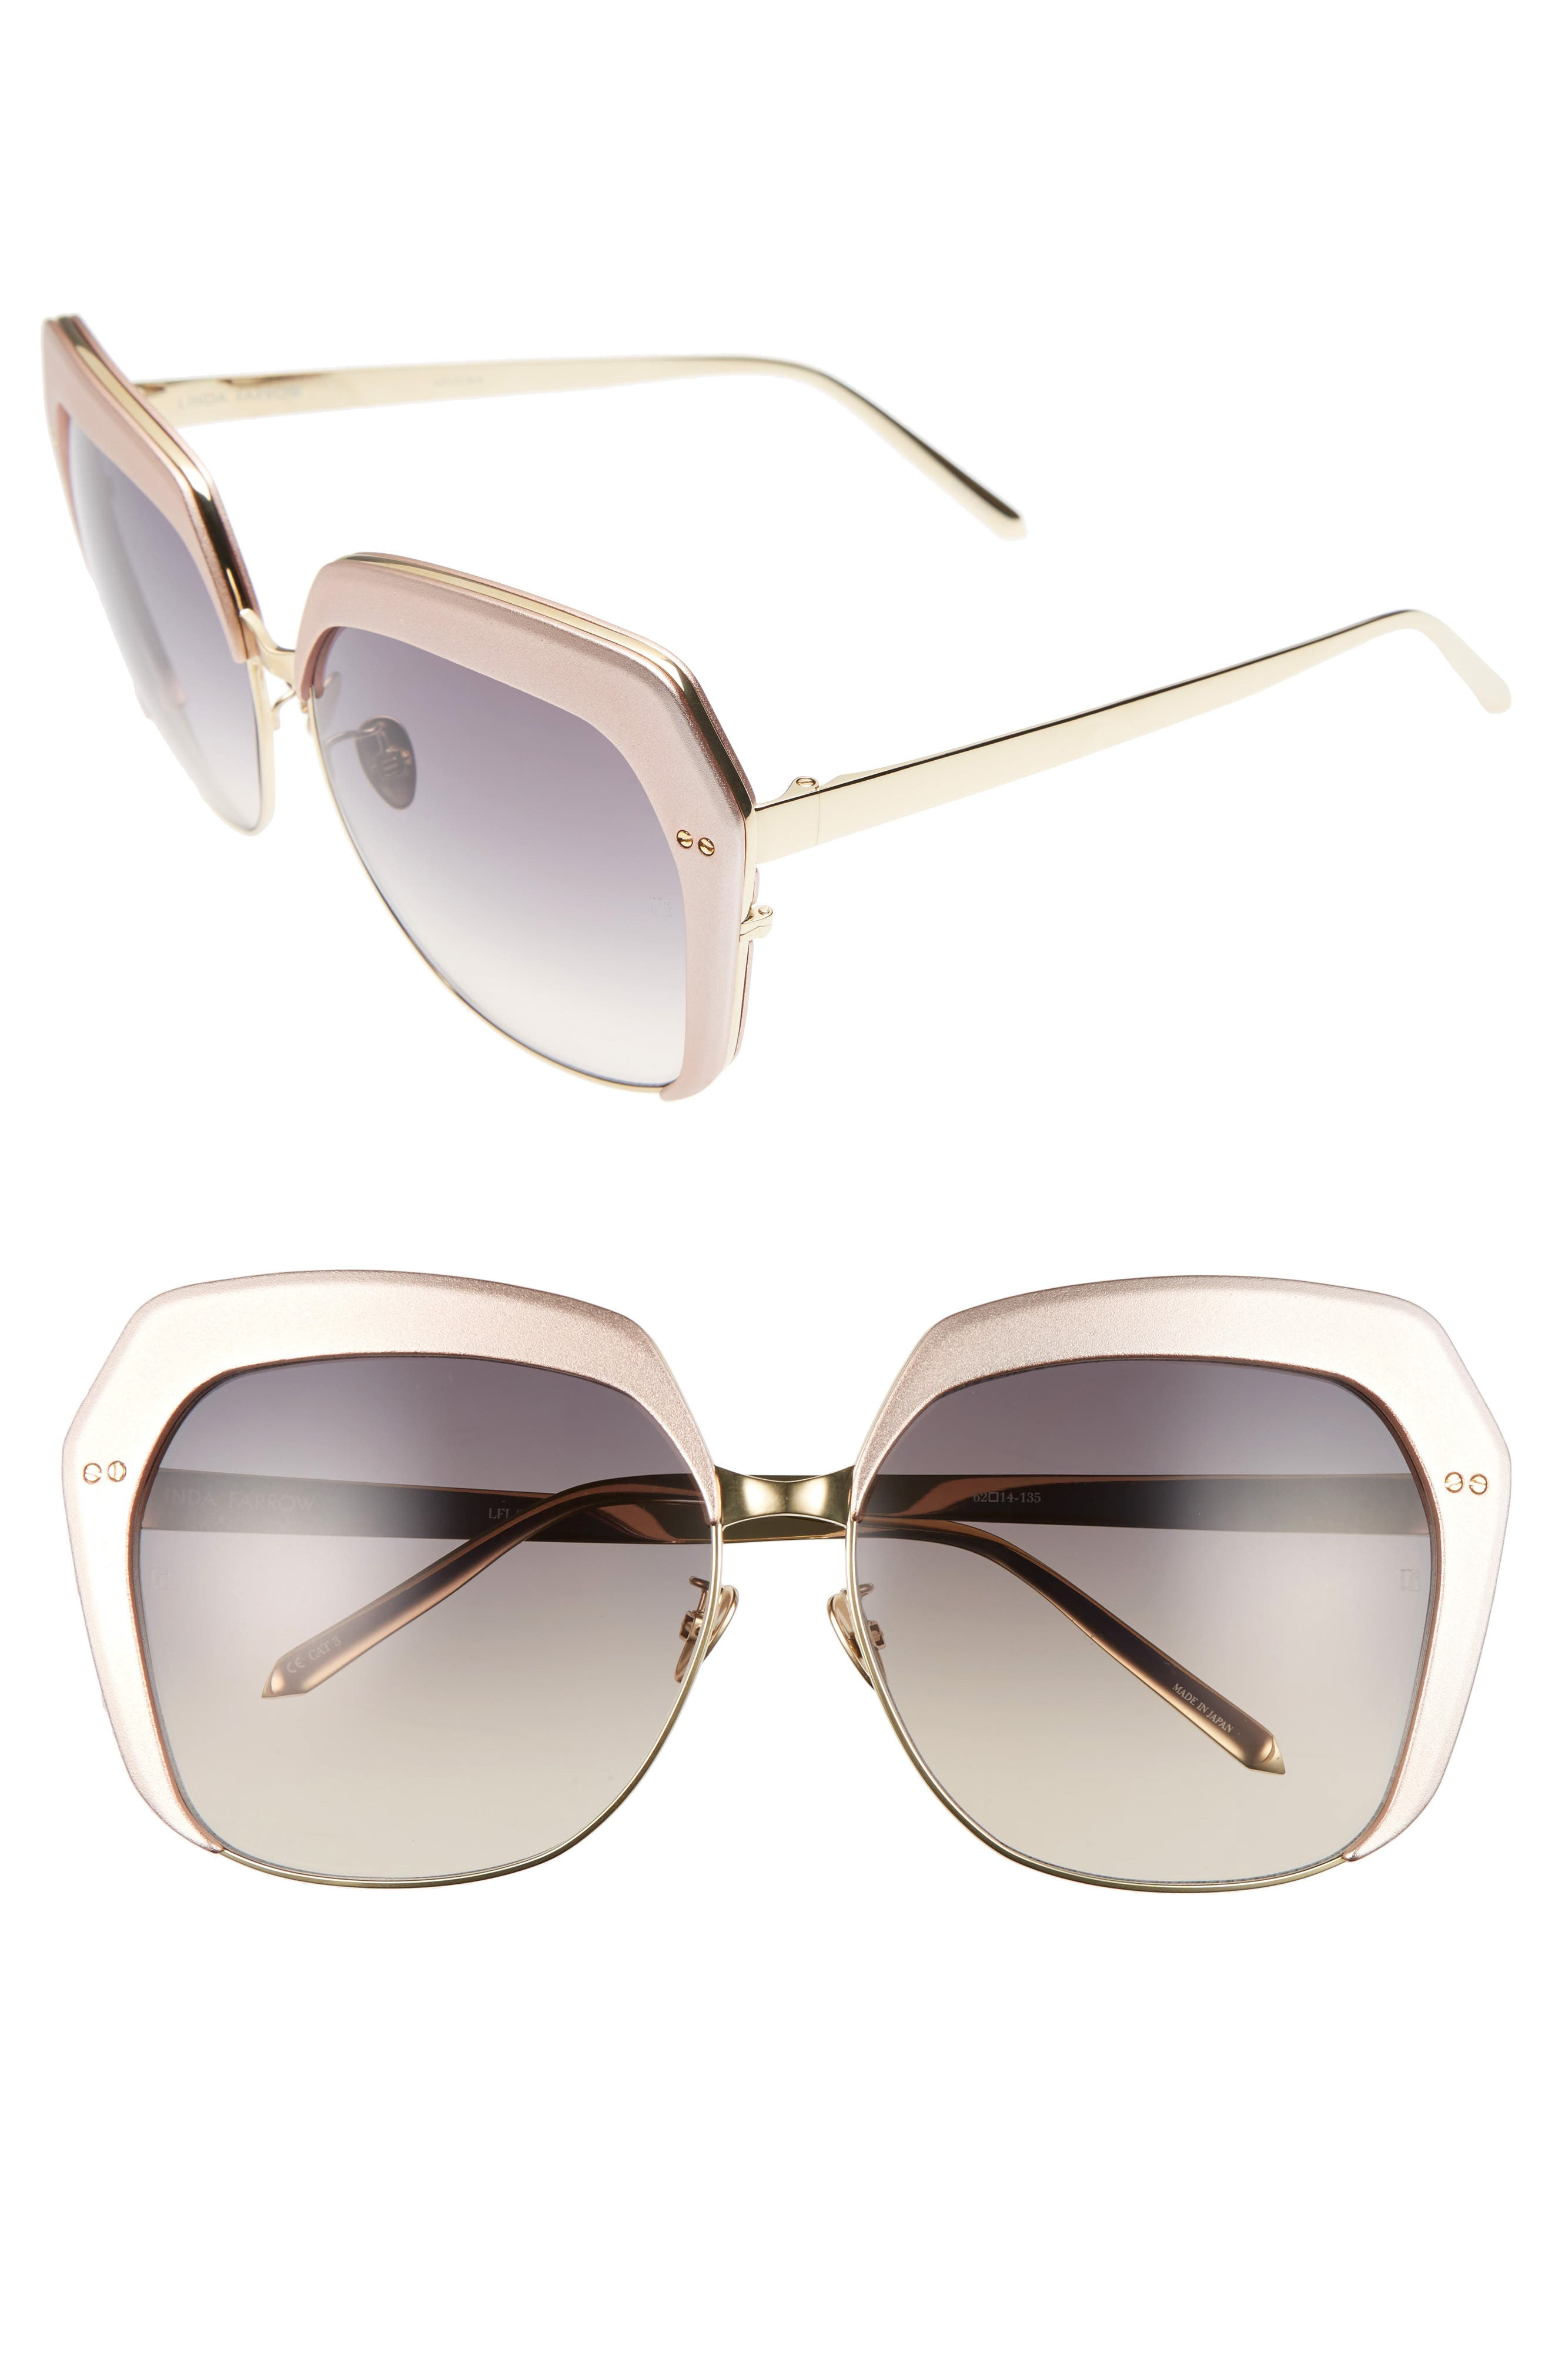 Linda Farrow 62mm 22 Karat Gold Trim Oversize Sunglasses